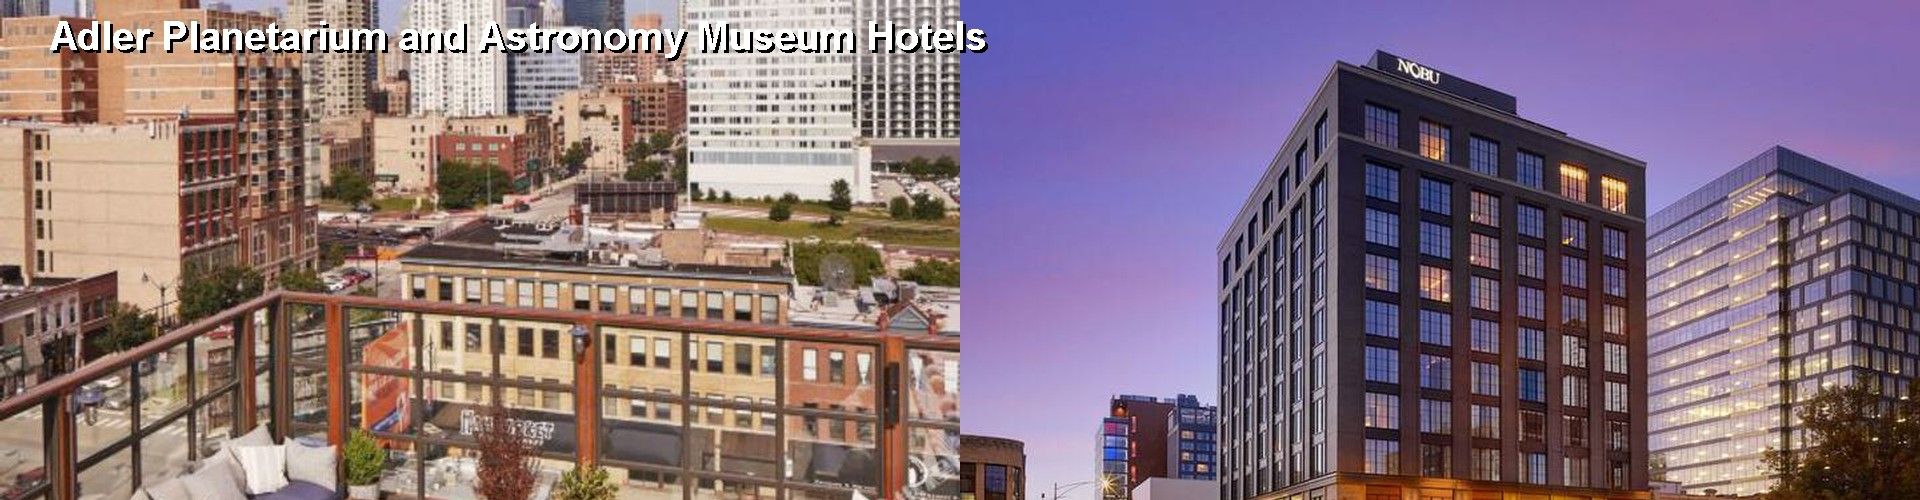 5 Best Hotels near Adler Planetarium and Astronomy Museum